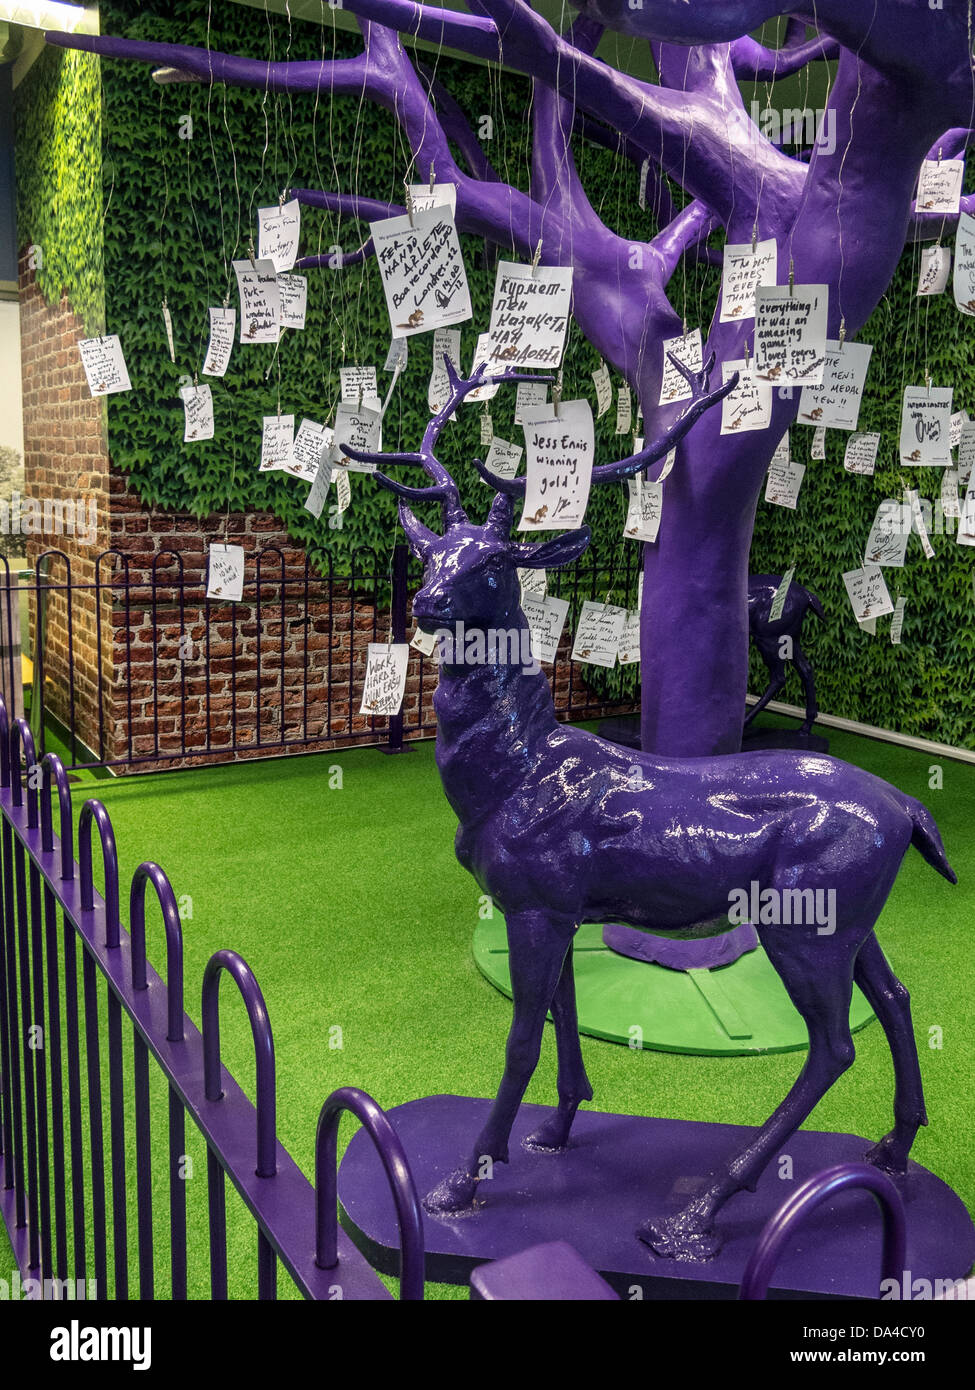 Messages from wellwishers adorn a purple tree a departure lounge of Heathrow airport Terminal 1 after the  2012 - Stock Image